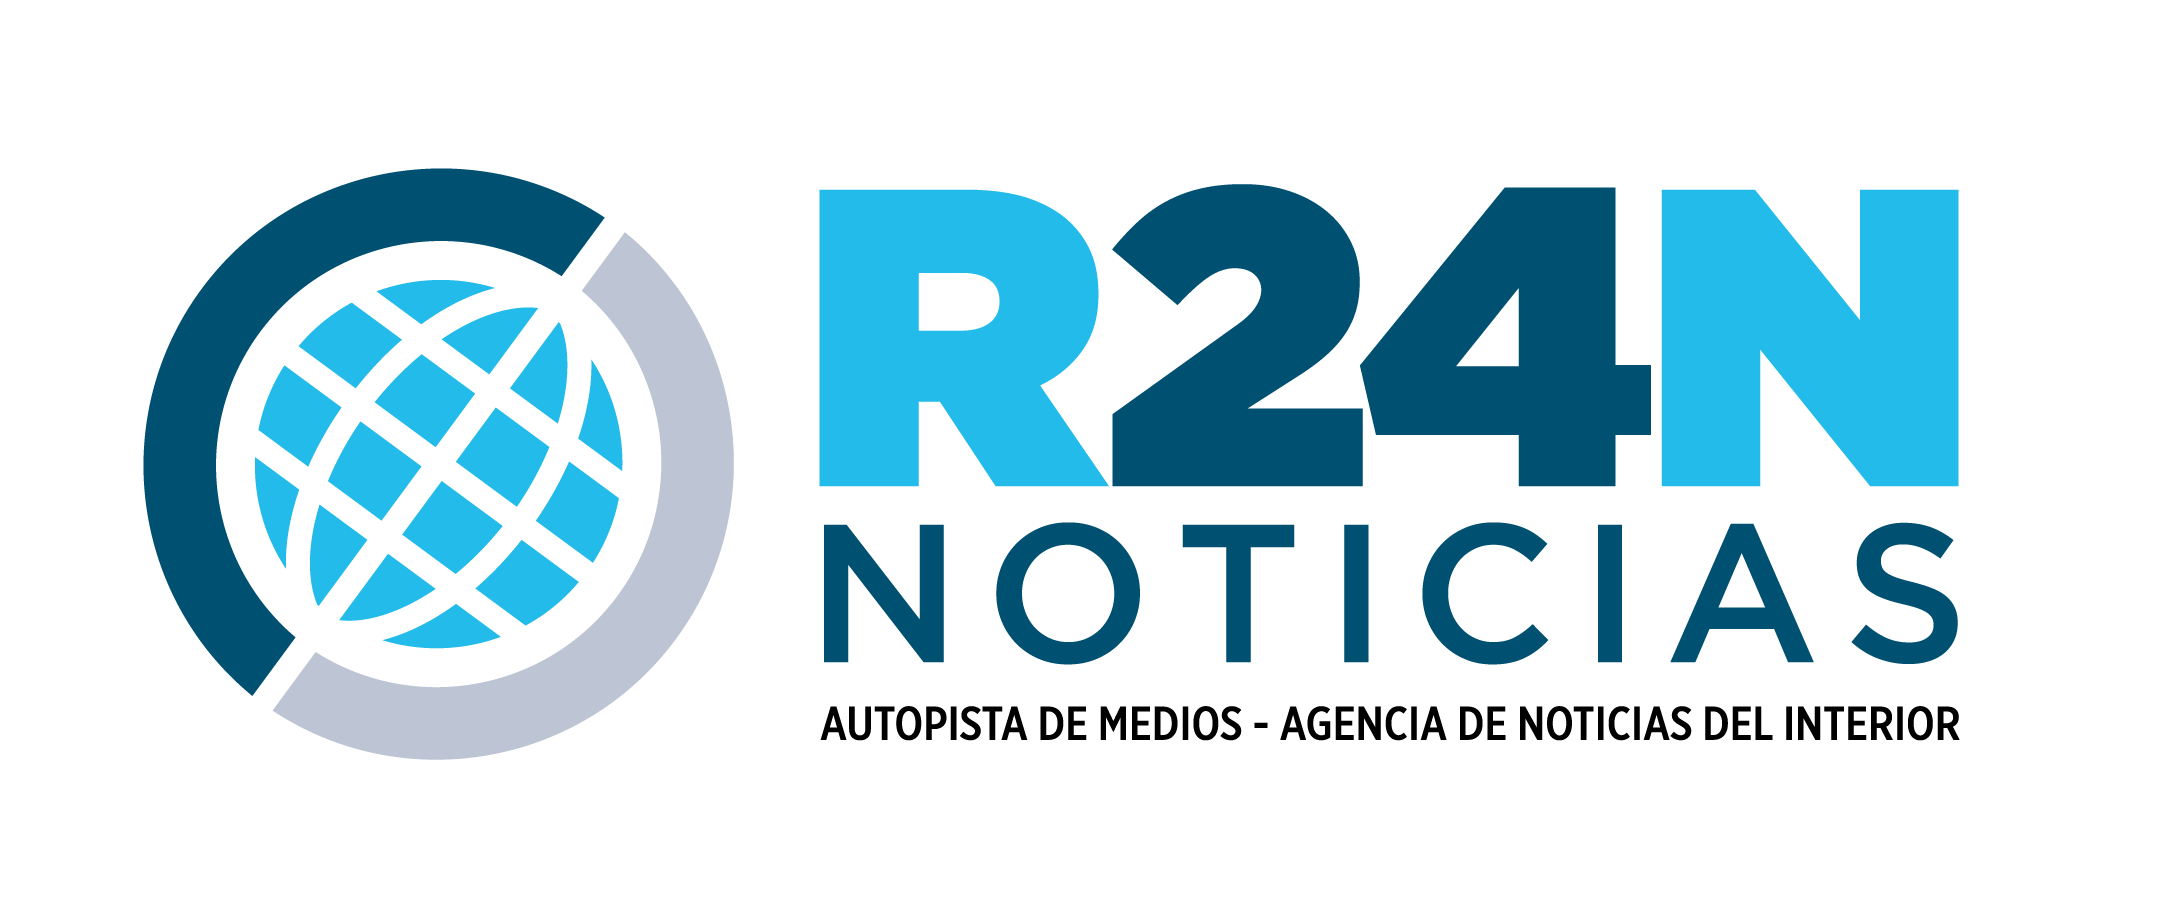 Rafaela 24 Noticias | R24N.com.ar